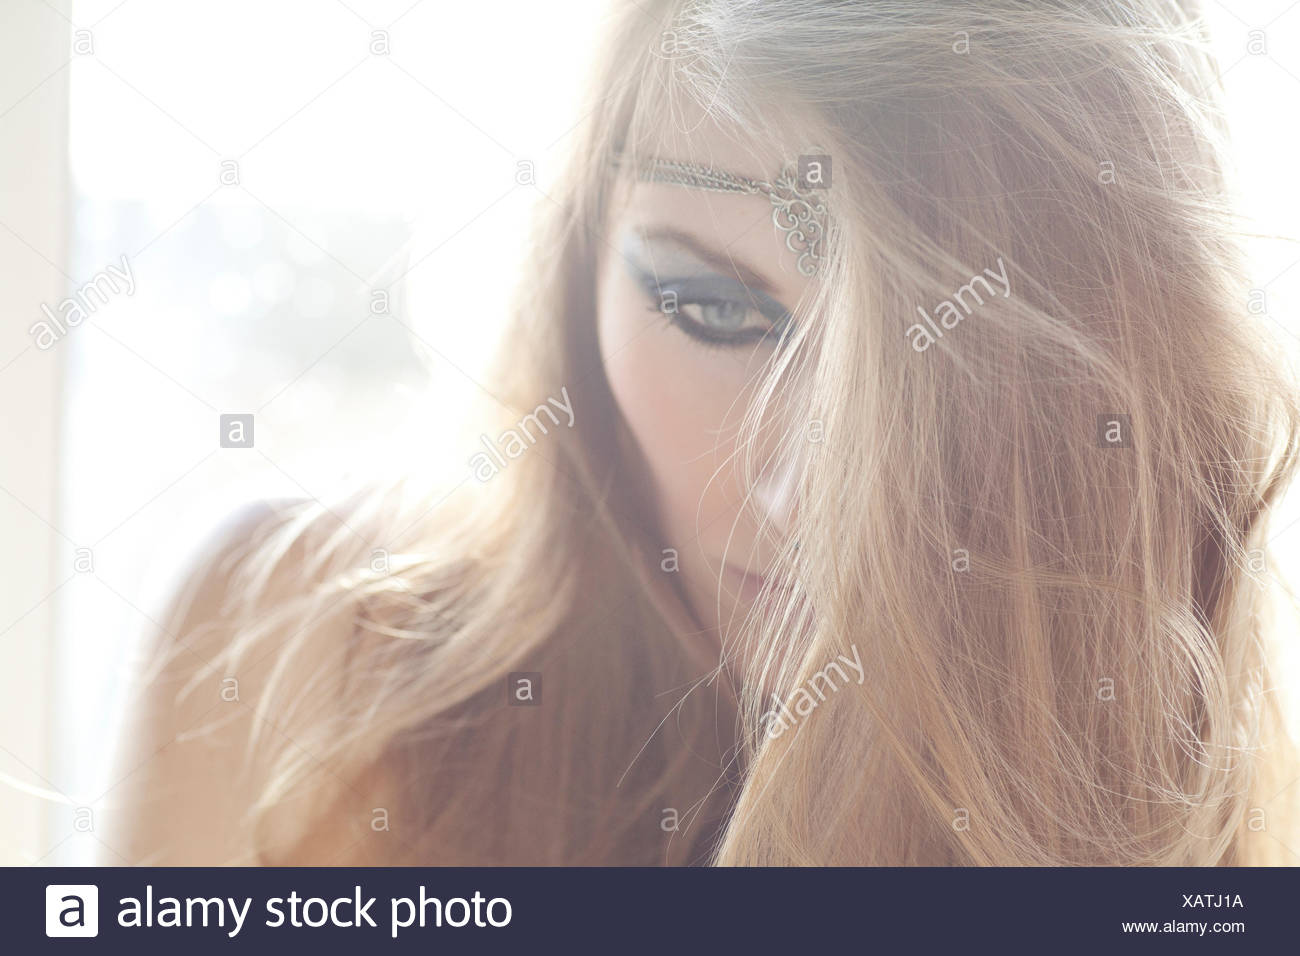 Portrait of a young woman, downcast look - Stock Image